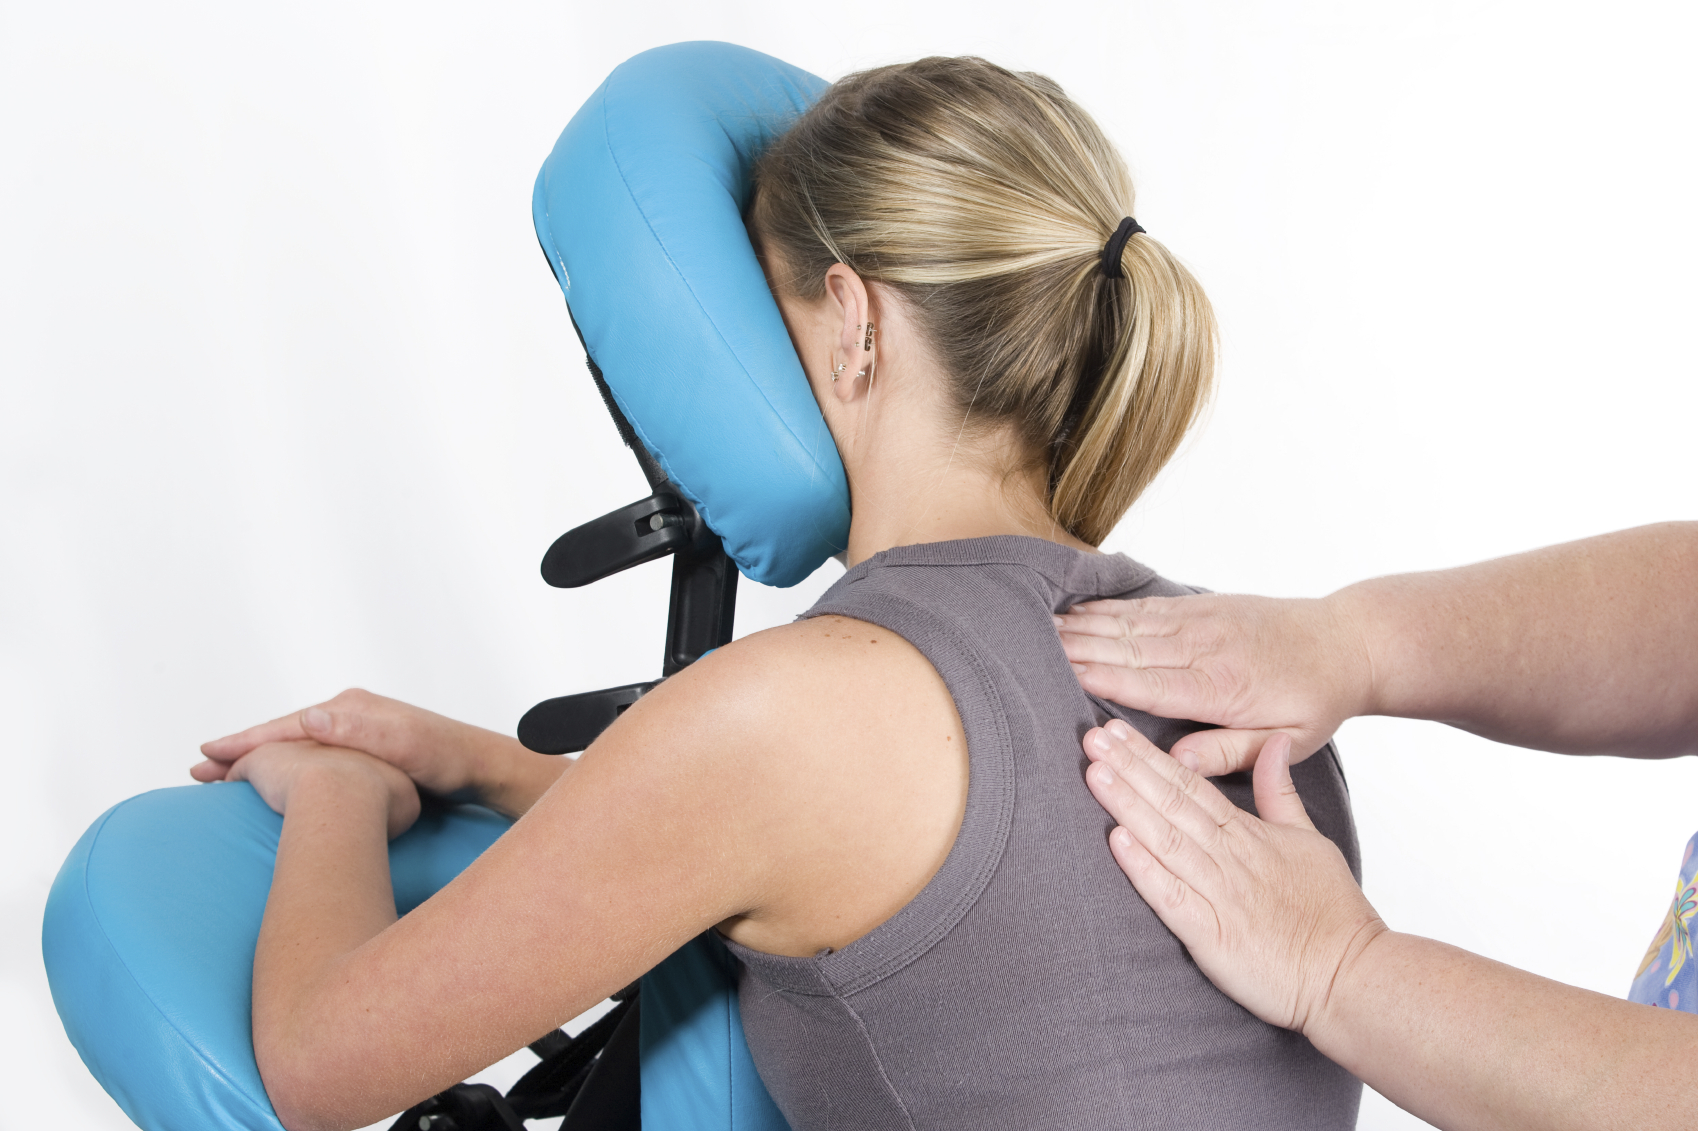 Corporate Chair Massage Premier Mobile Spa Parties Bachelorette Bridal And Baby